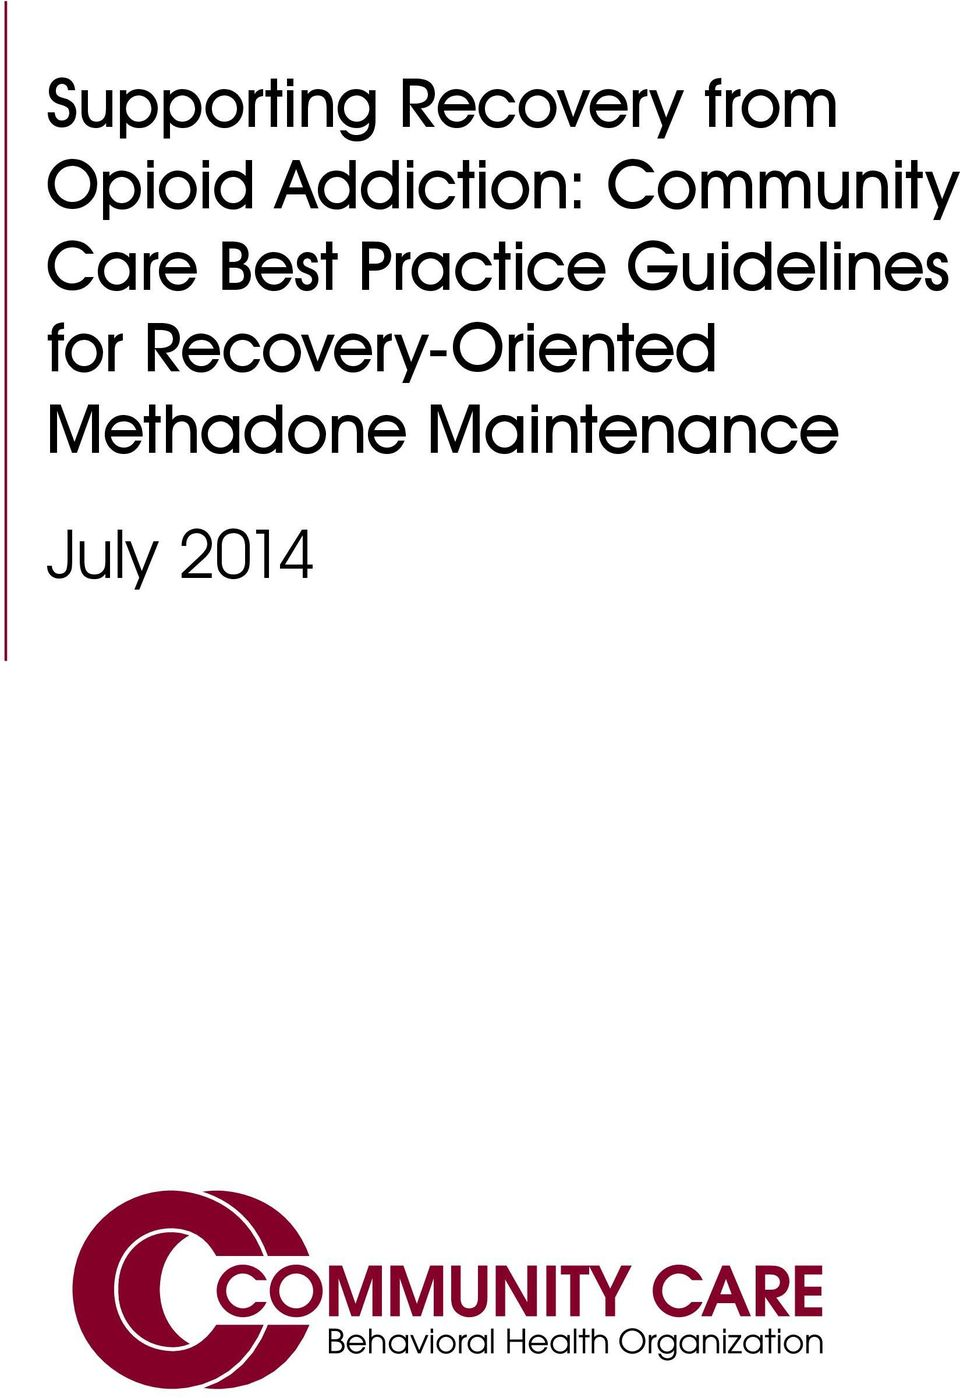 Practice Guidelines for